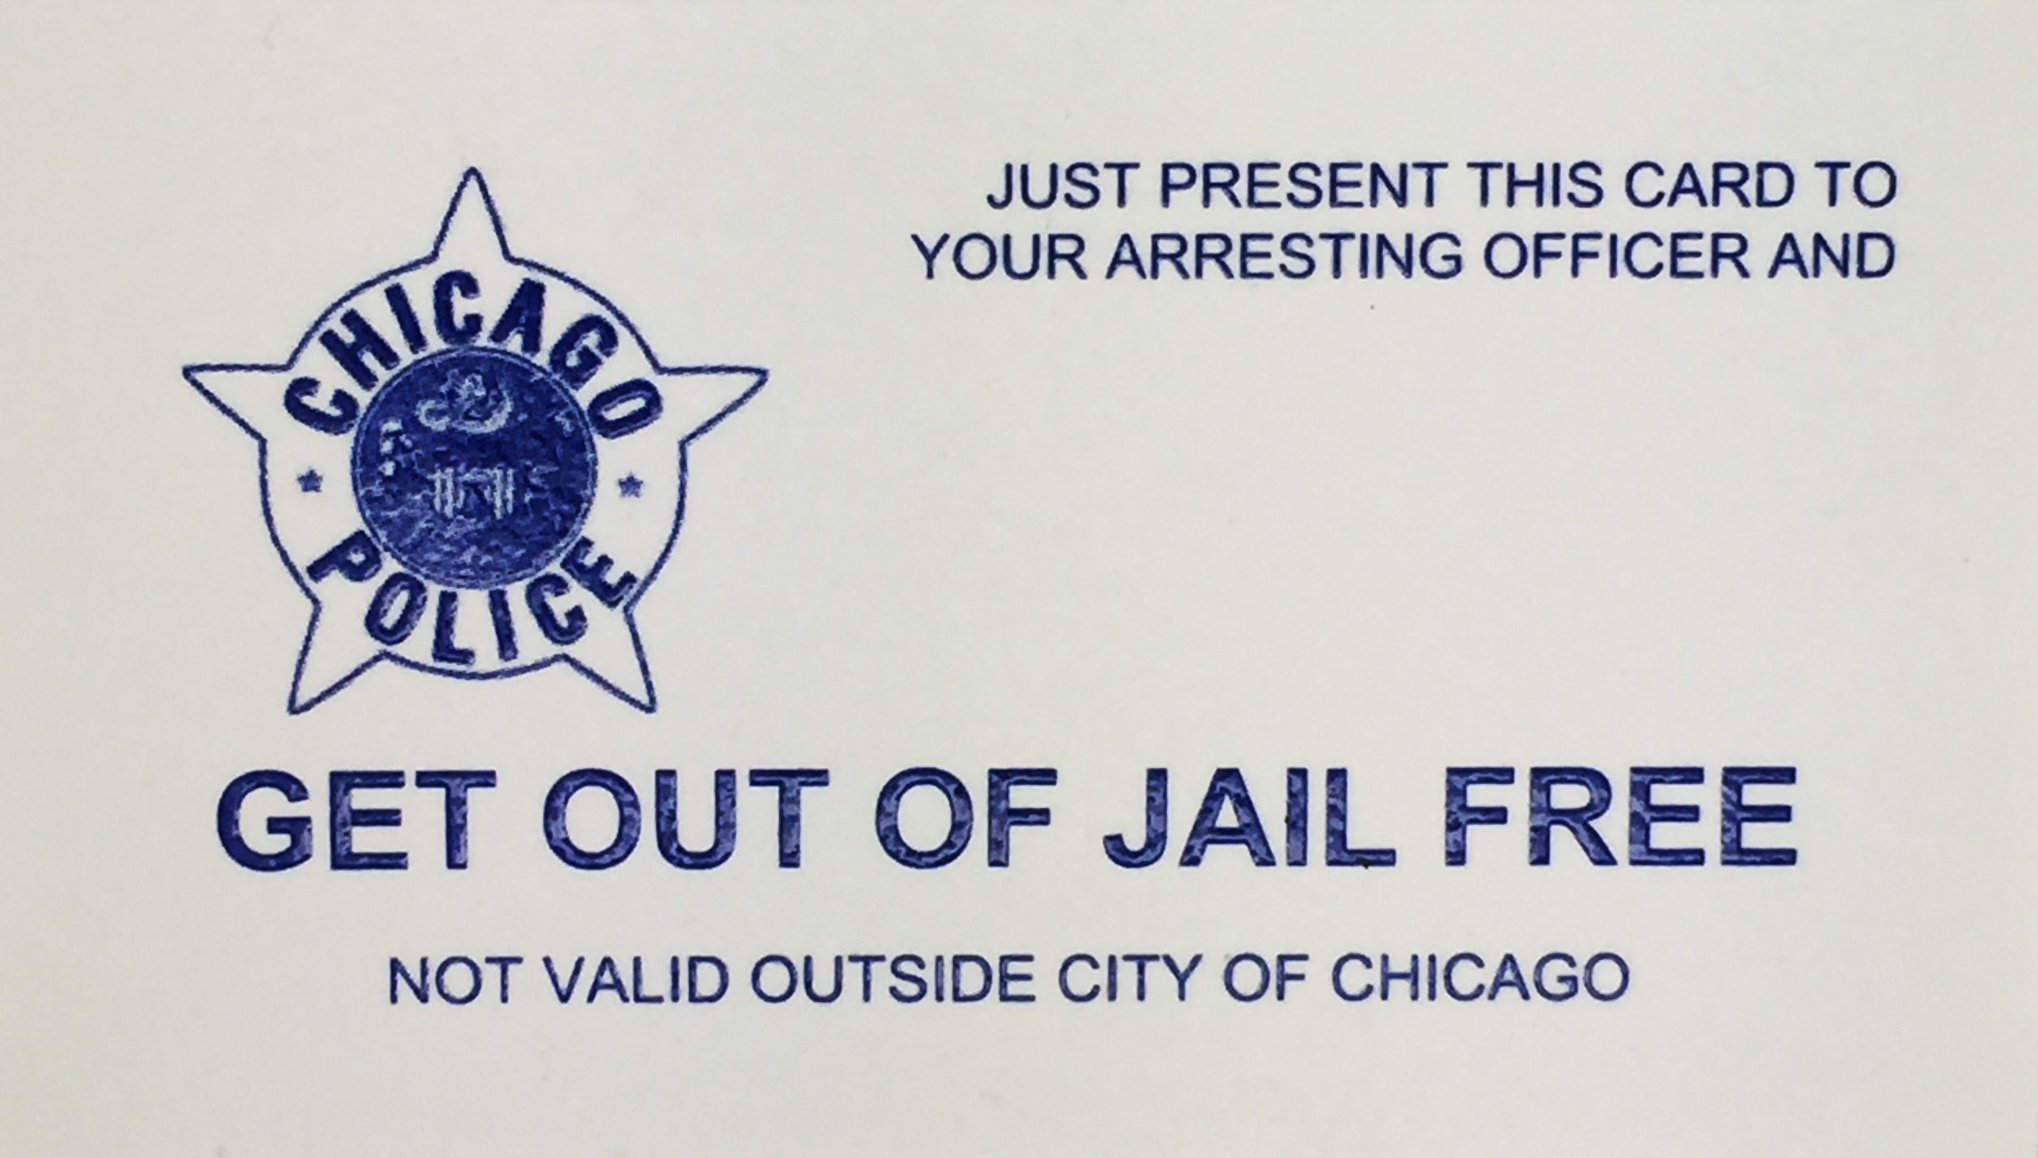 get out of jail free card real life | Cardjdi.org